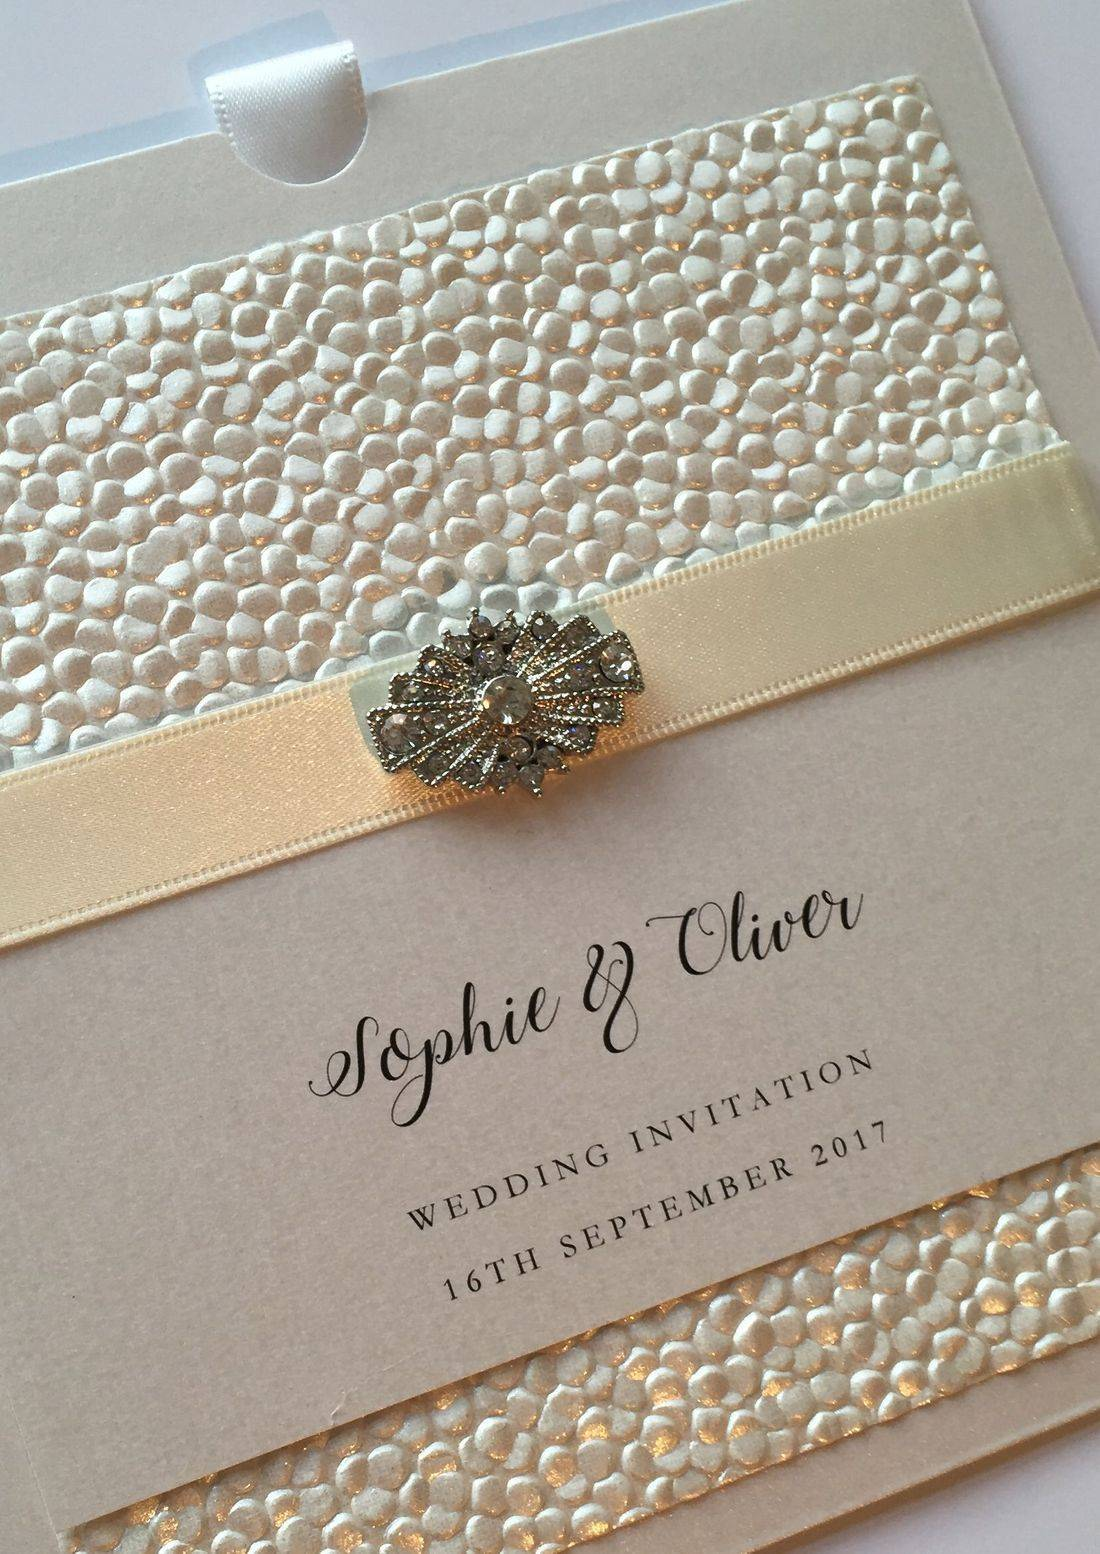 Lasercut wallet invitation, wedding invitations, luxury wedding invitations